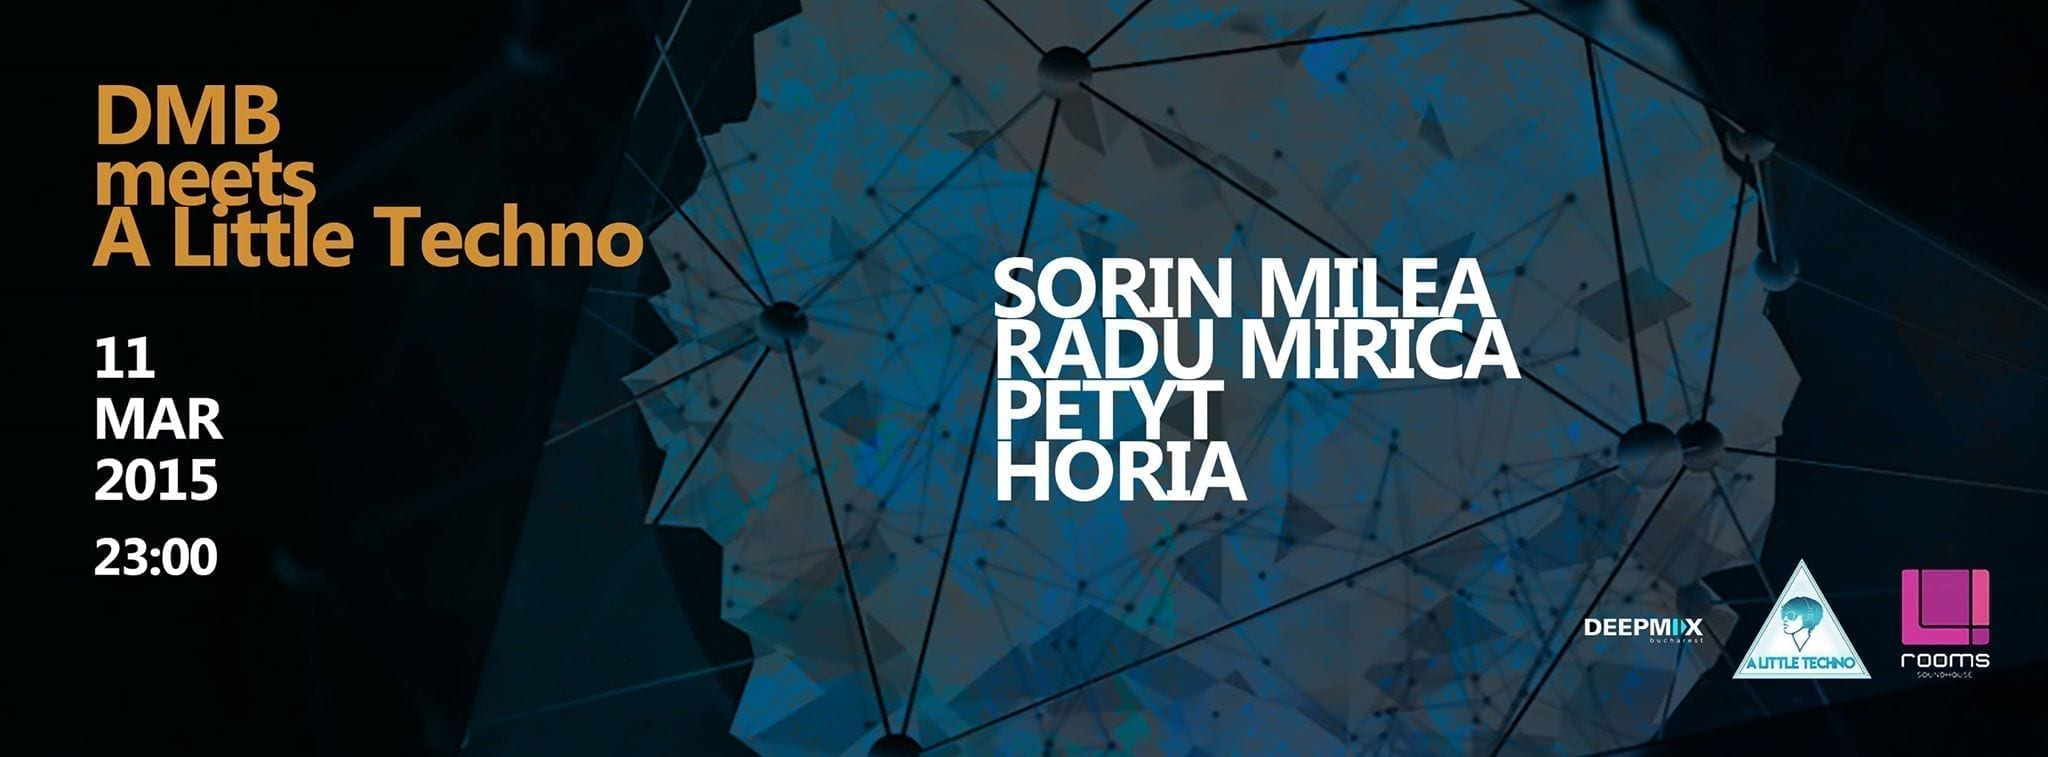 DMB meets A Little Techno w. Sorin Milea, Radu Mirica, Petyt, Horia @ 4rooms